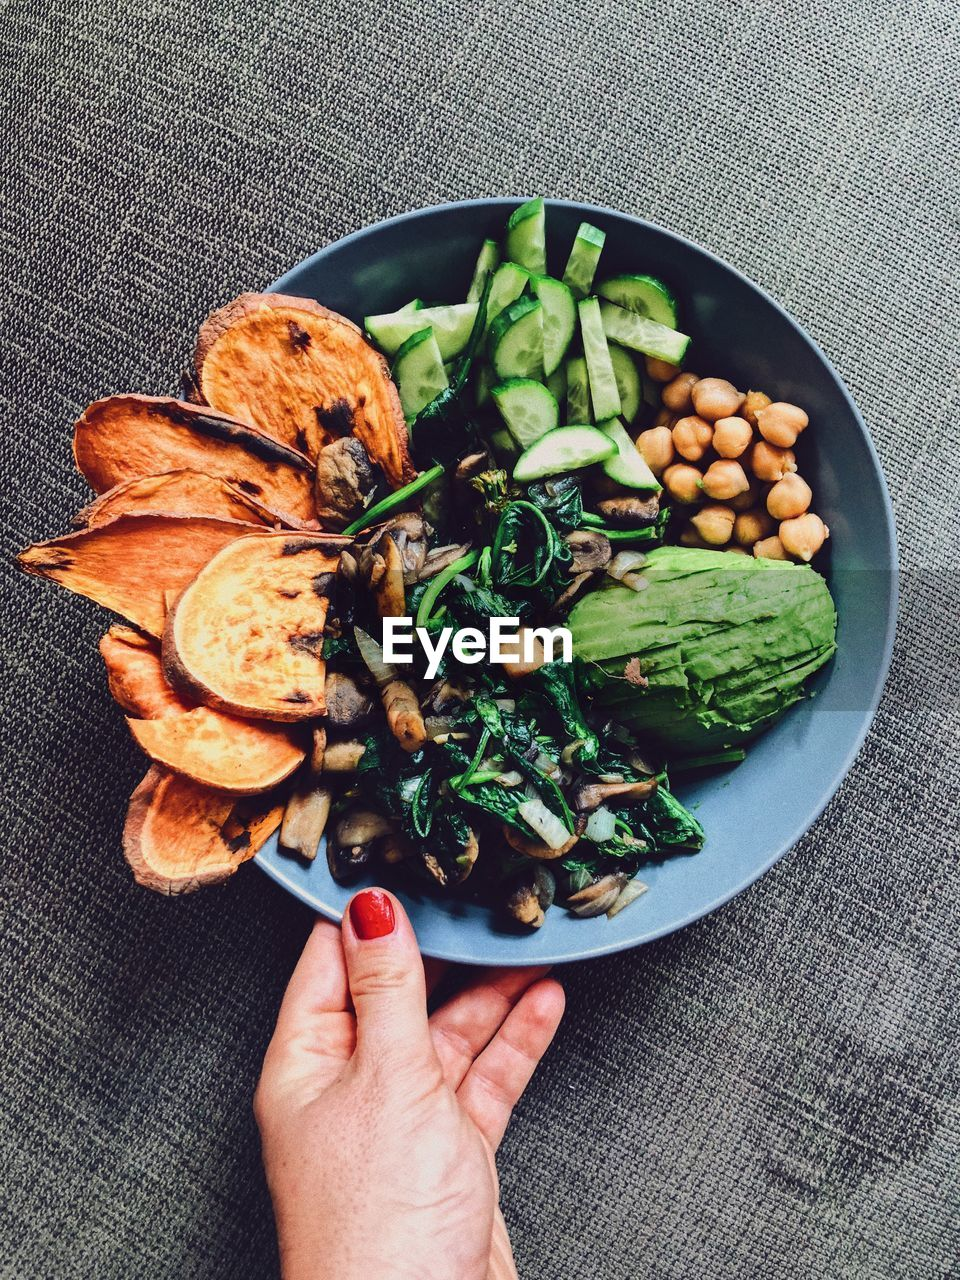 food, human hand, hand, food and drink, healthy eating, vegetable, human body part, wellbeing, freshness, one person, ready-to-eat, indoors, directly above, unrecognizable person, high angle view, holding, bowl, real people, personal perspective, body part, finger